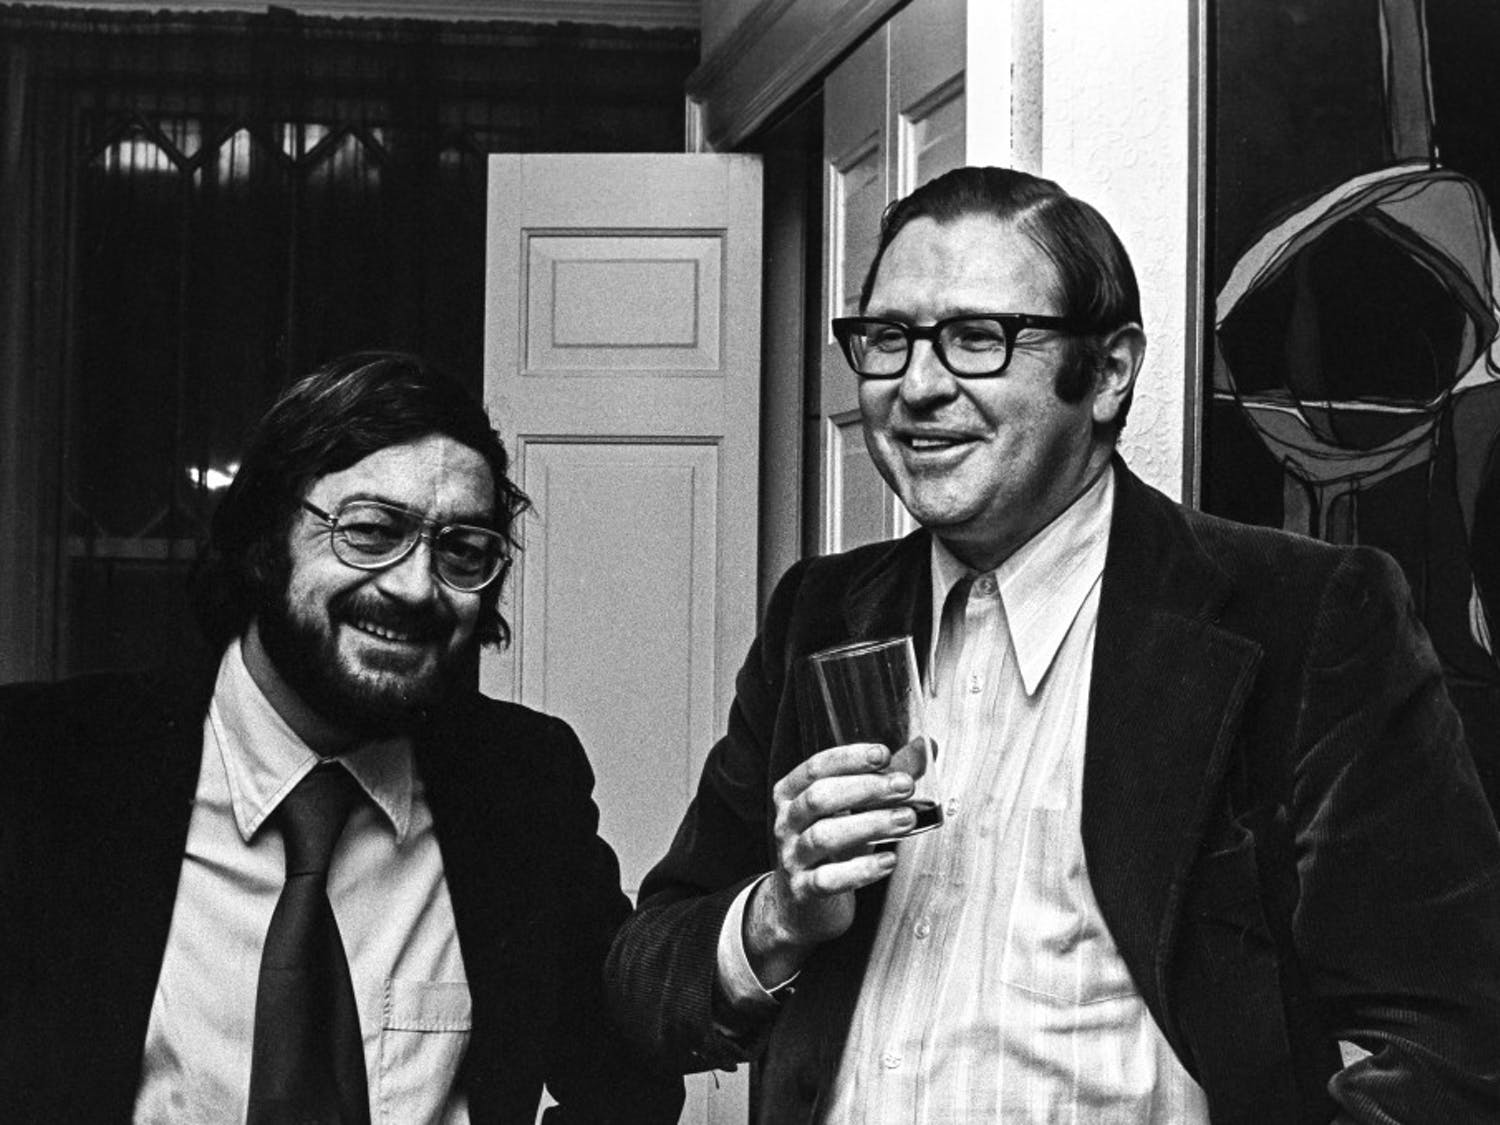 O'Grady (right) at a party in 1974 with Provost of Arts and Letters, John Sullivan (left). O'Grady, who died on Tuesday, leaves a lasting legacy as the founder of the media study department at UB.